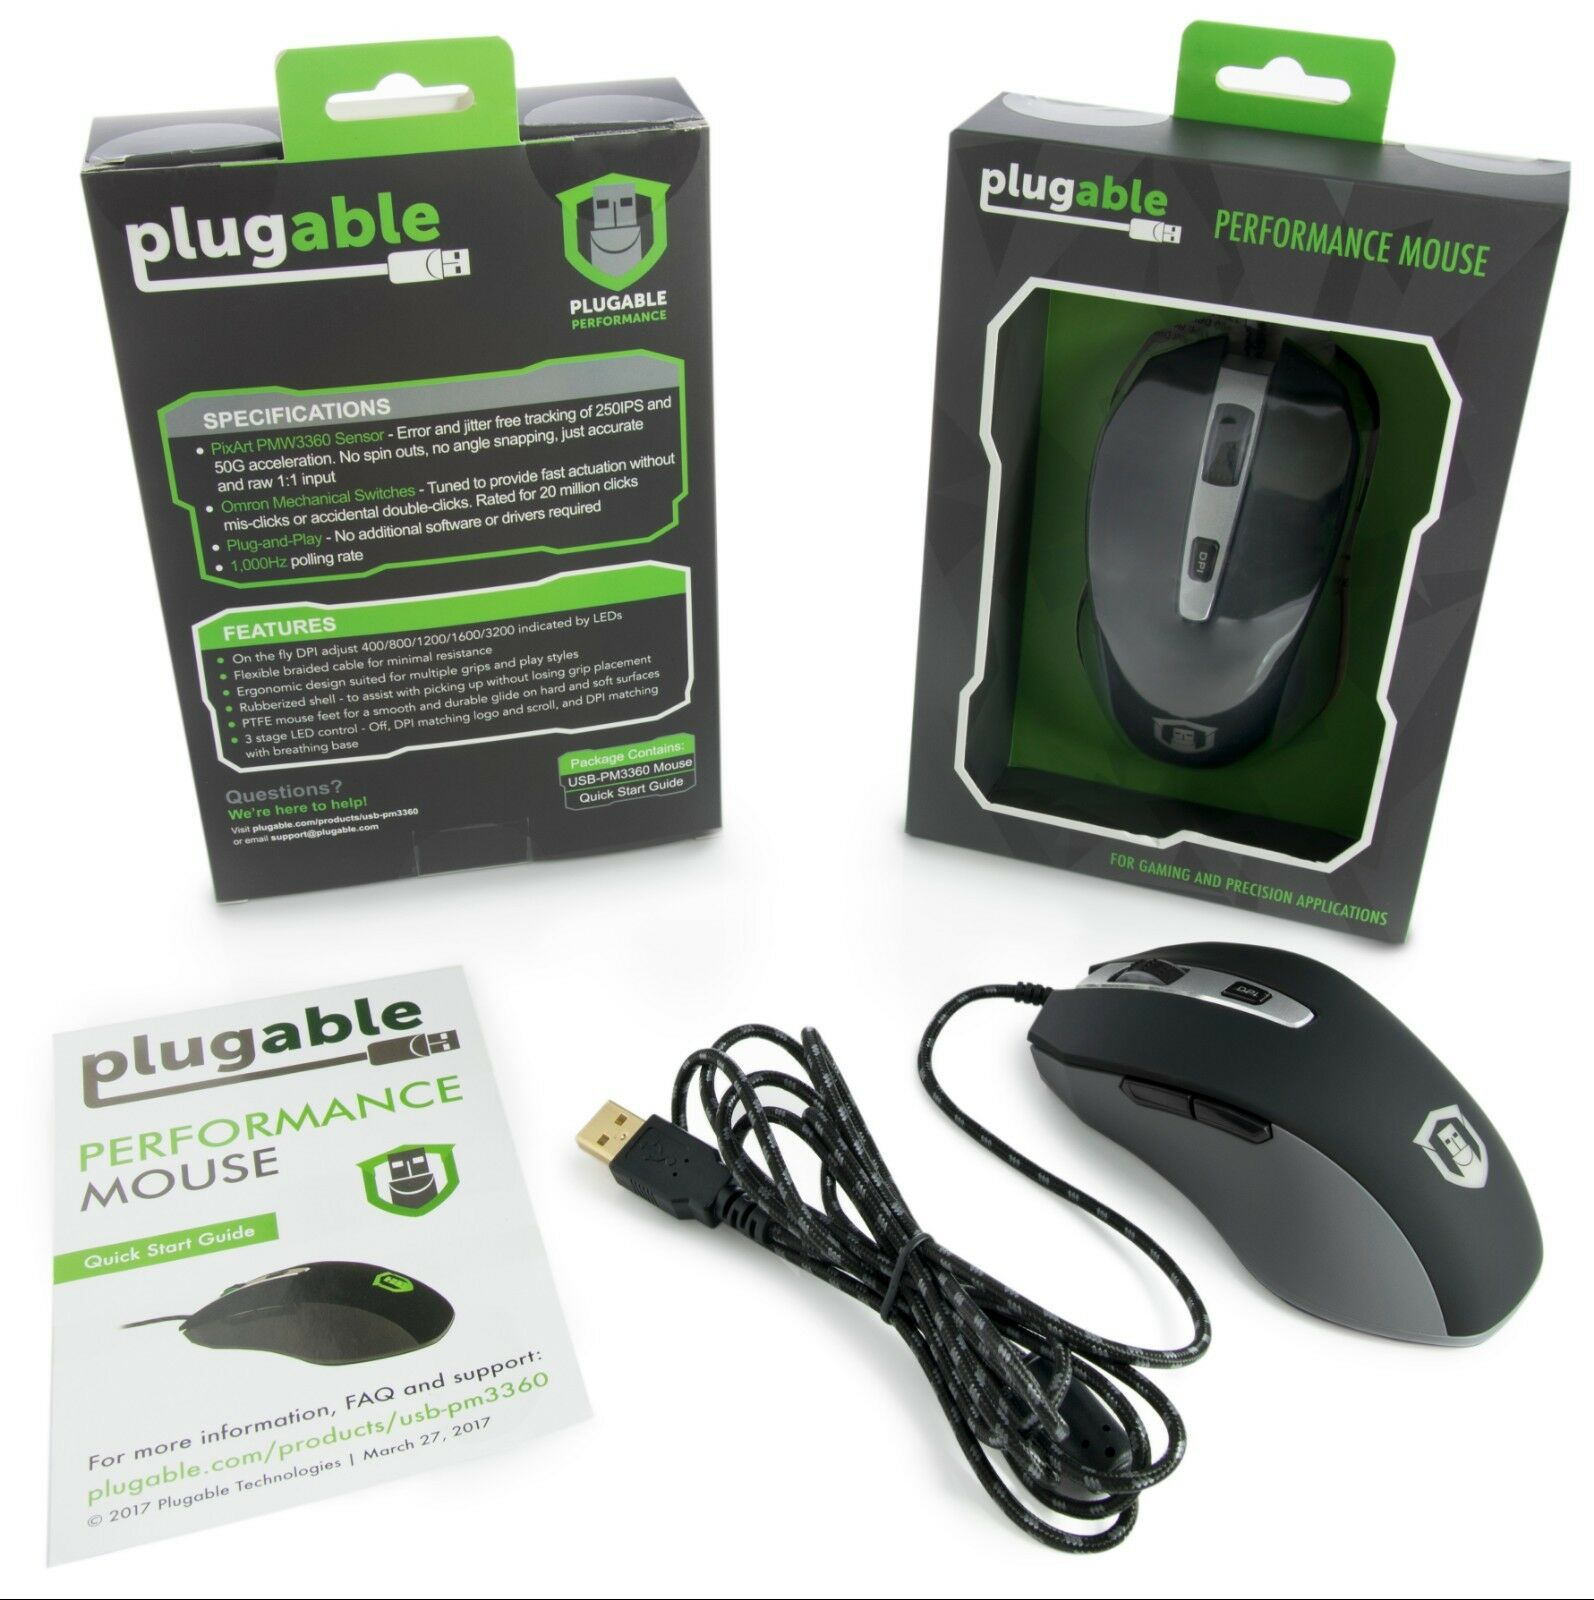 d51c679d0c8 Plugable Performance Mouse With Pixart PMW 3360 Sensor for Gaming and  Precision for sale online | eBay